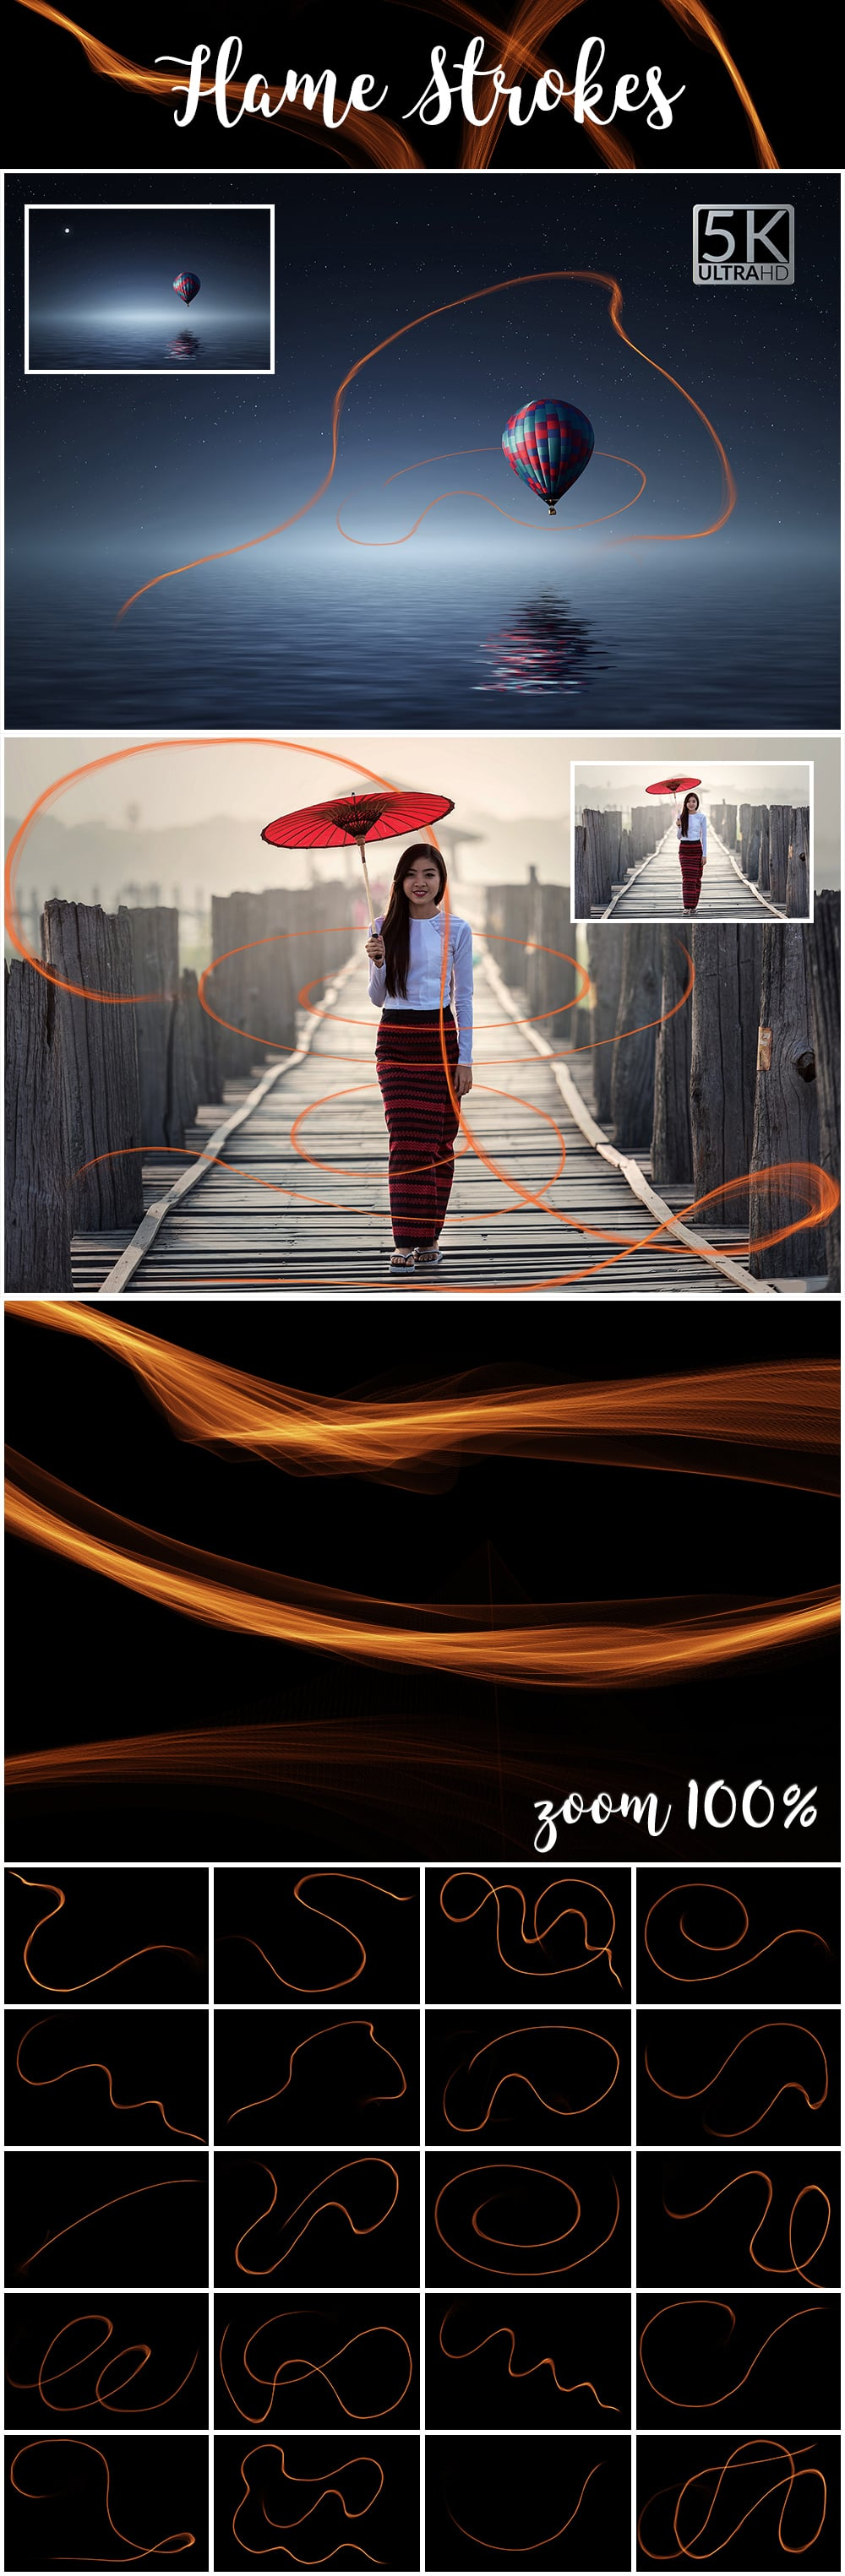 1100 Photoshop Overlays Mega Pack - Extended License - 32 Flame Strokes